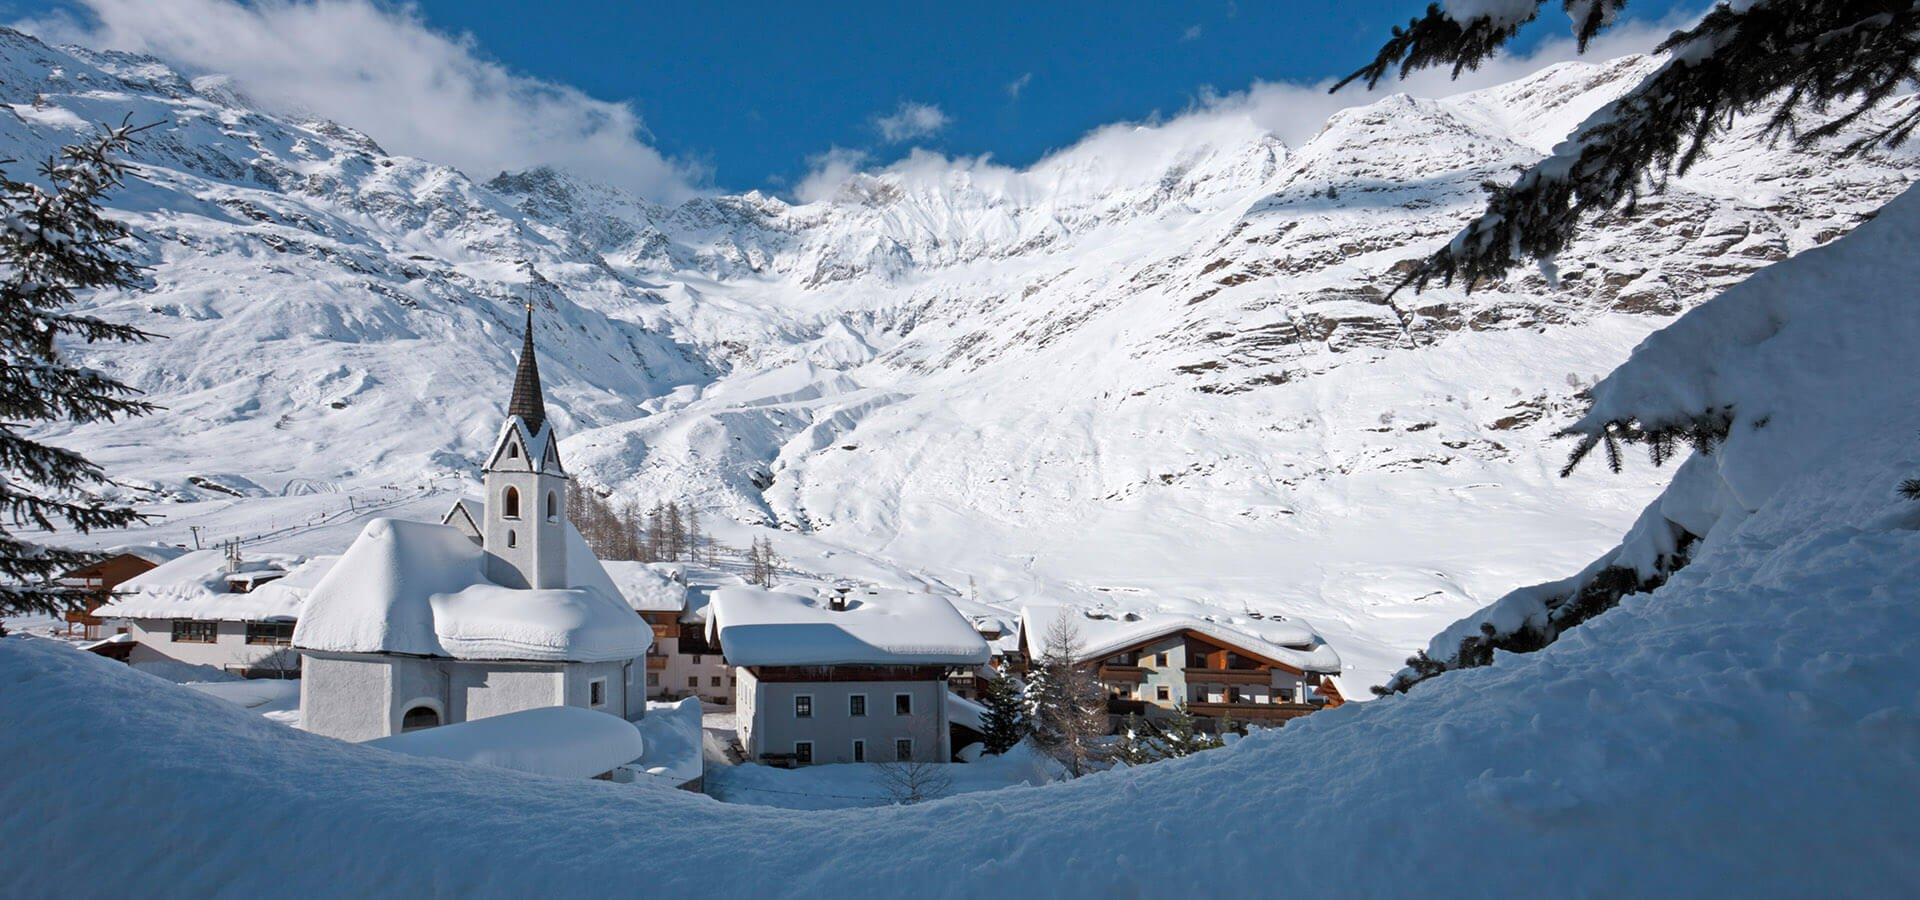 Skiurlaub in Südtirol - Winterurlaub Meraner Land